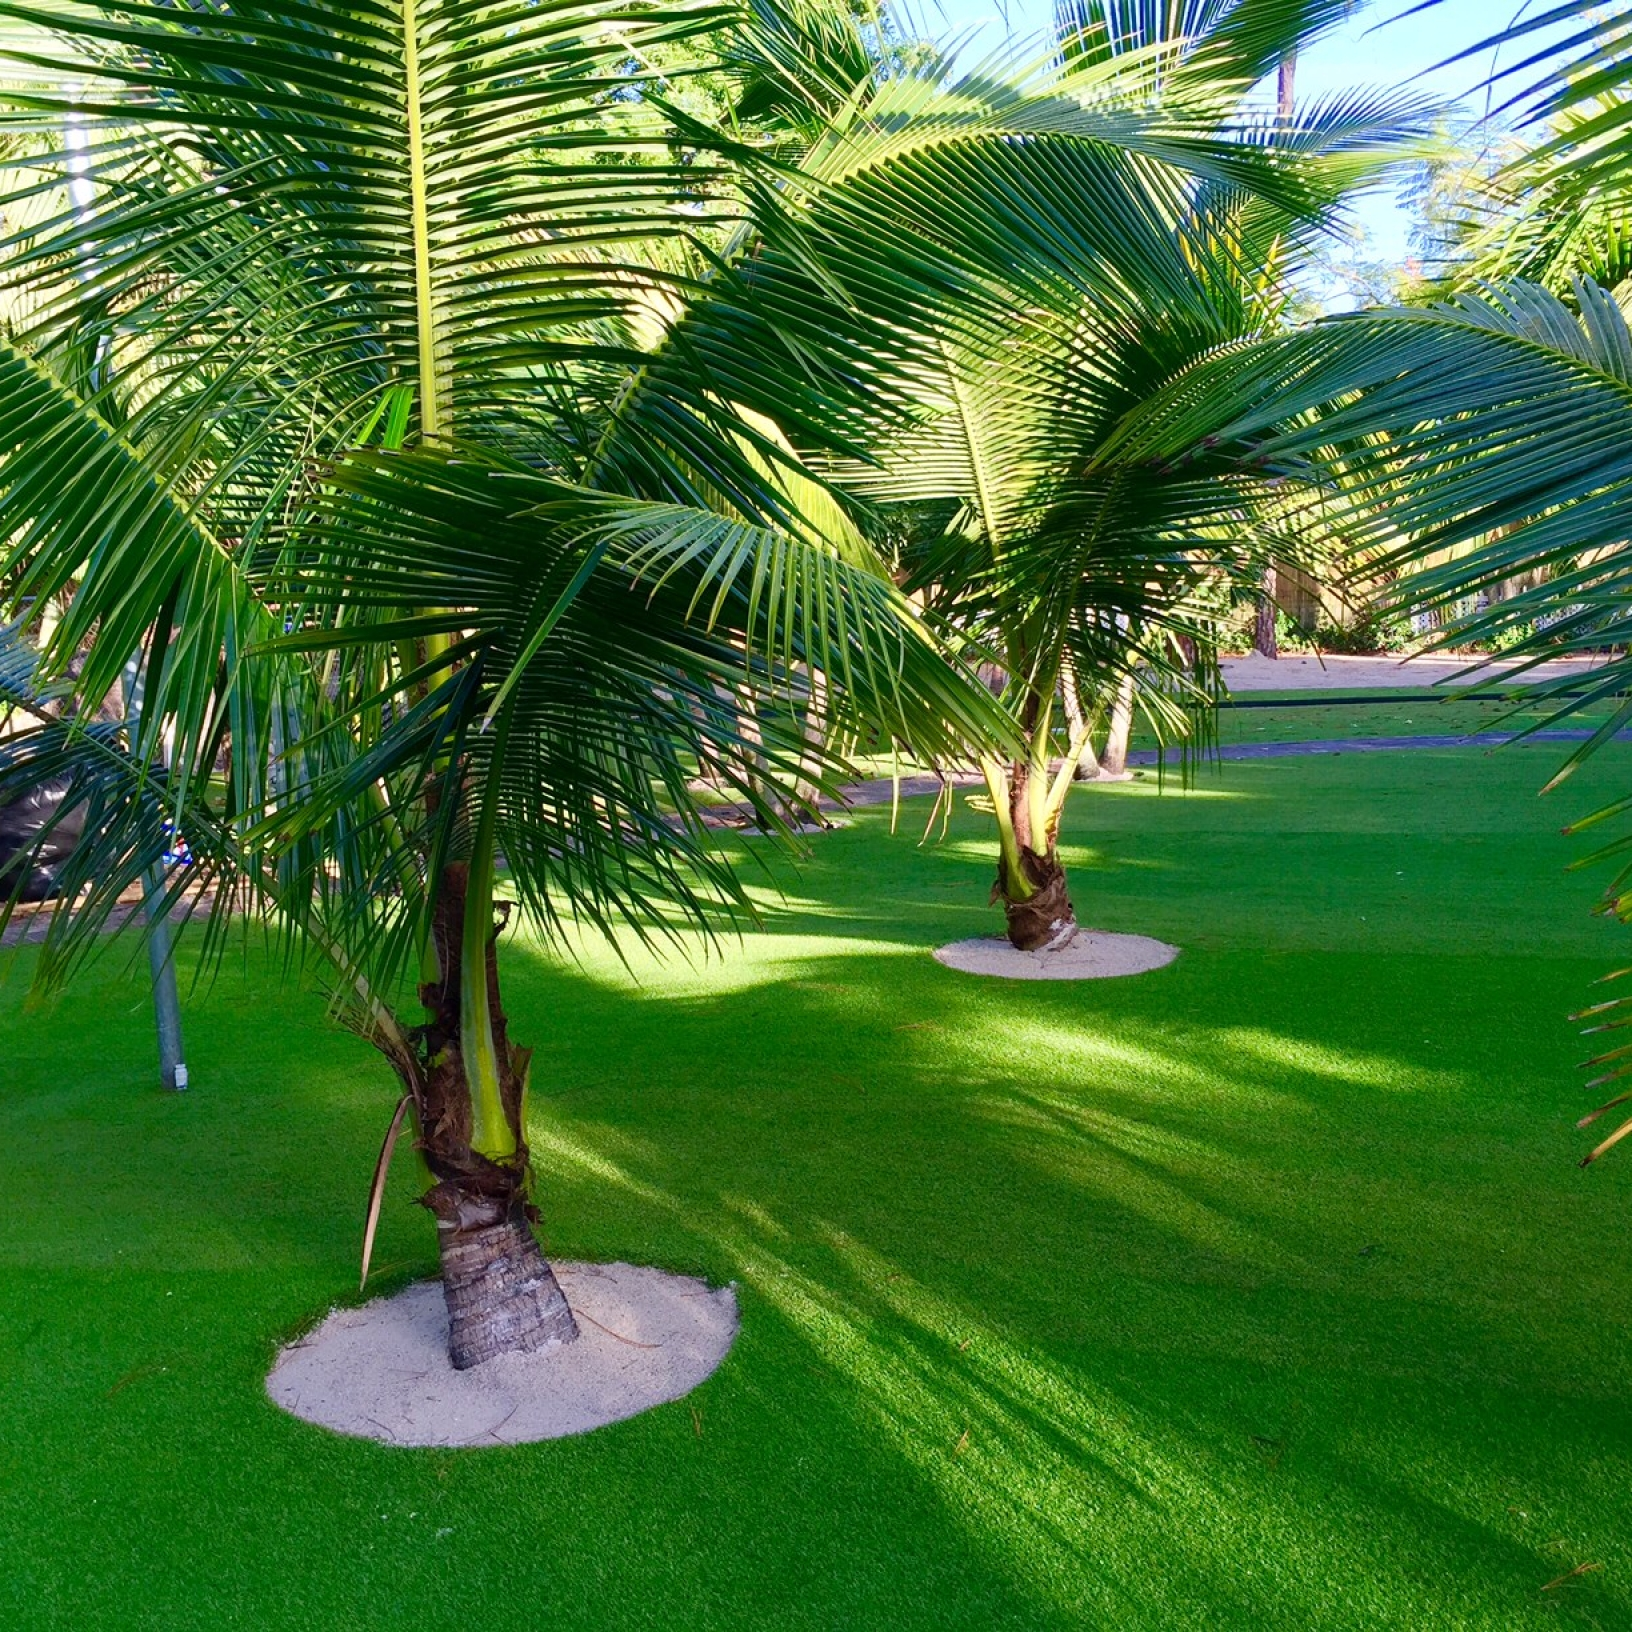 Synthetic lawn installation with palm trees backyard Florida.